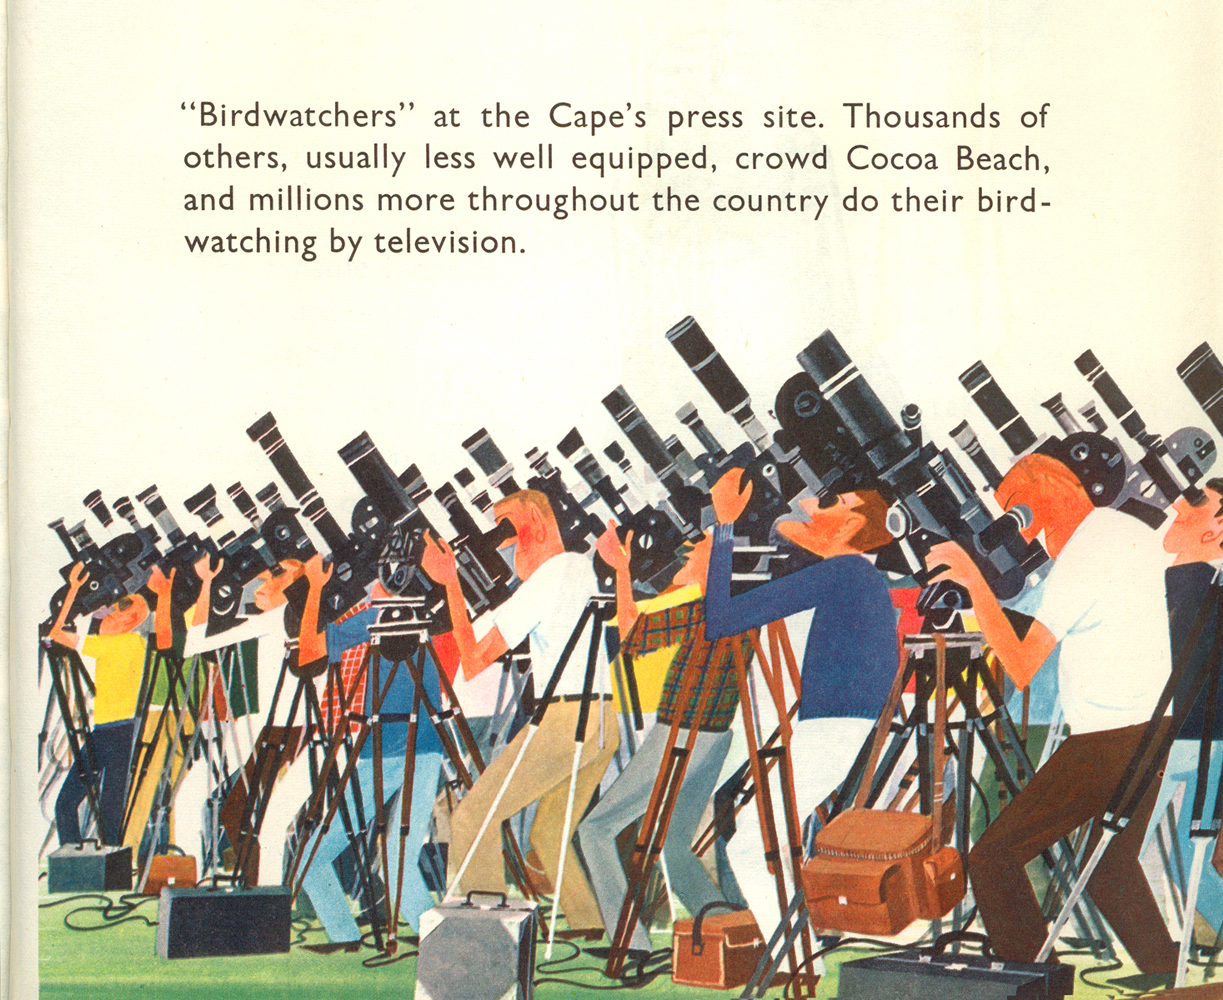 This is Cape Canaveral: birdwatchers